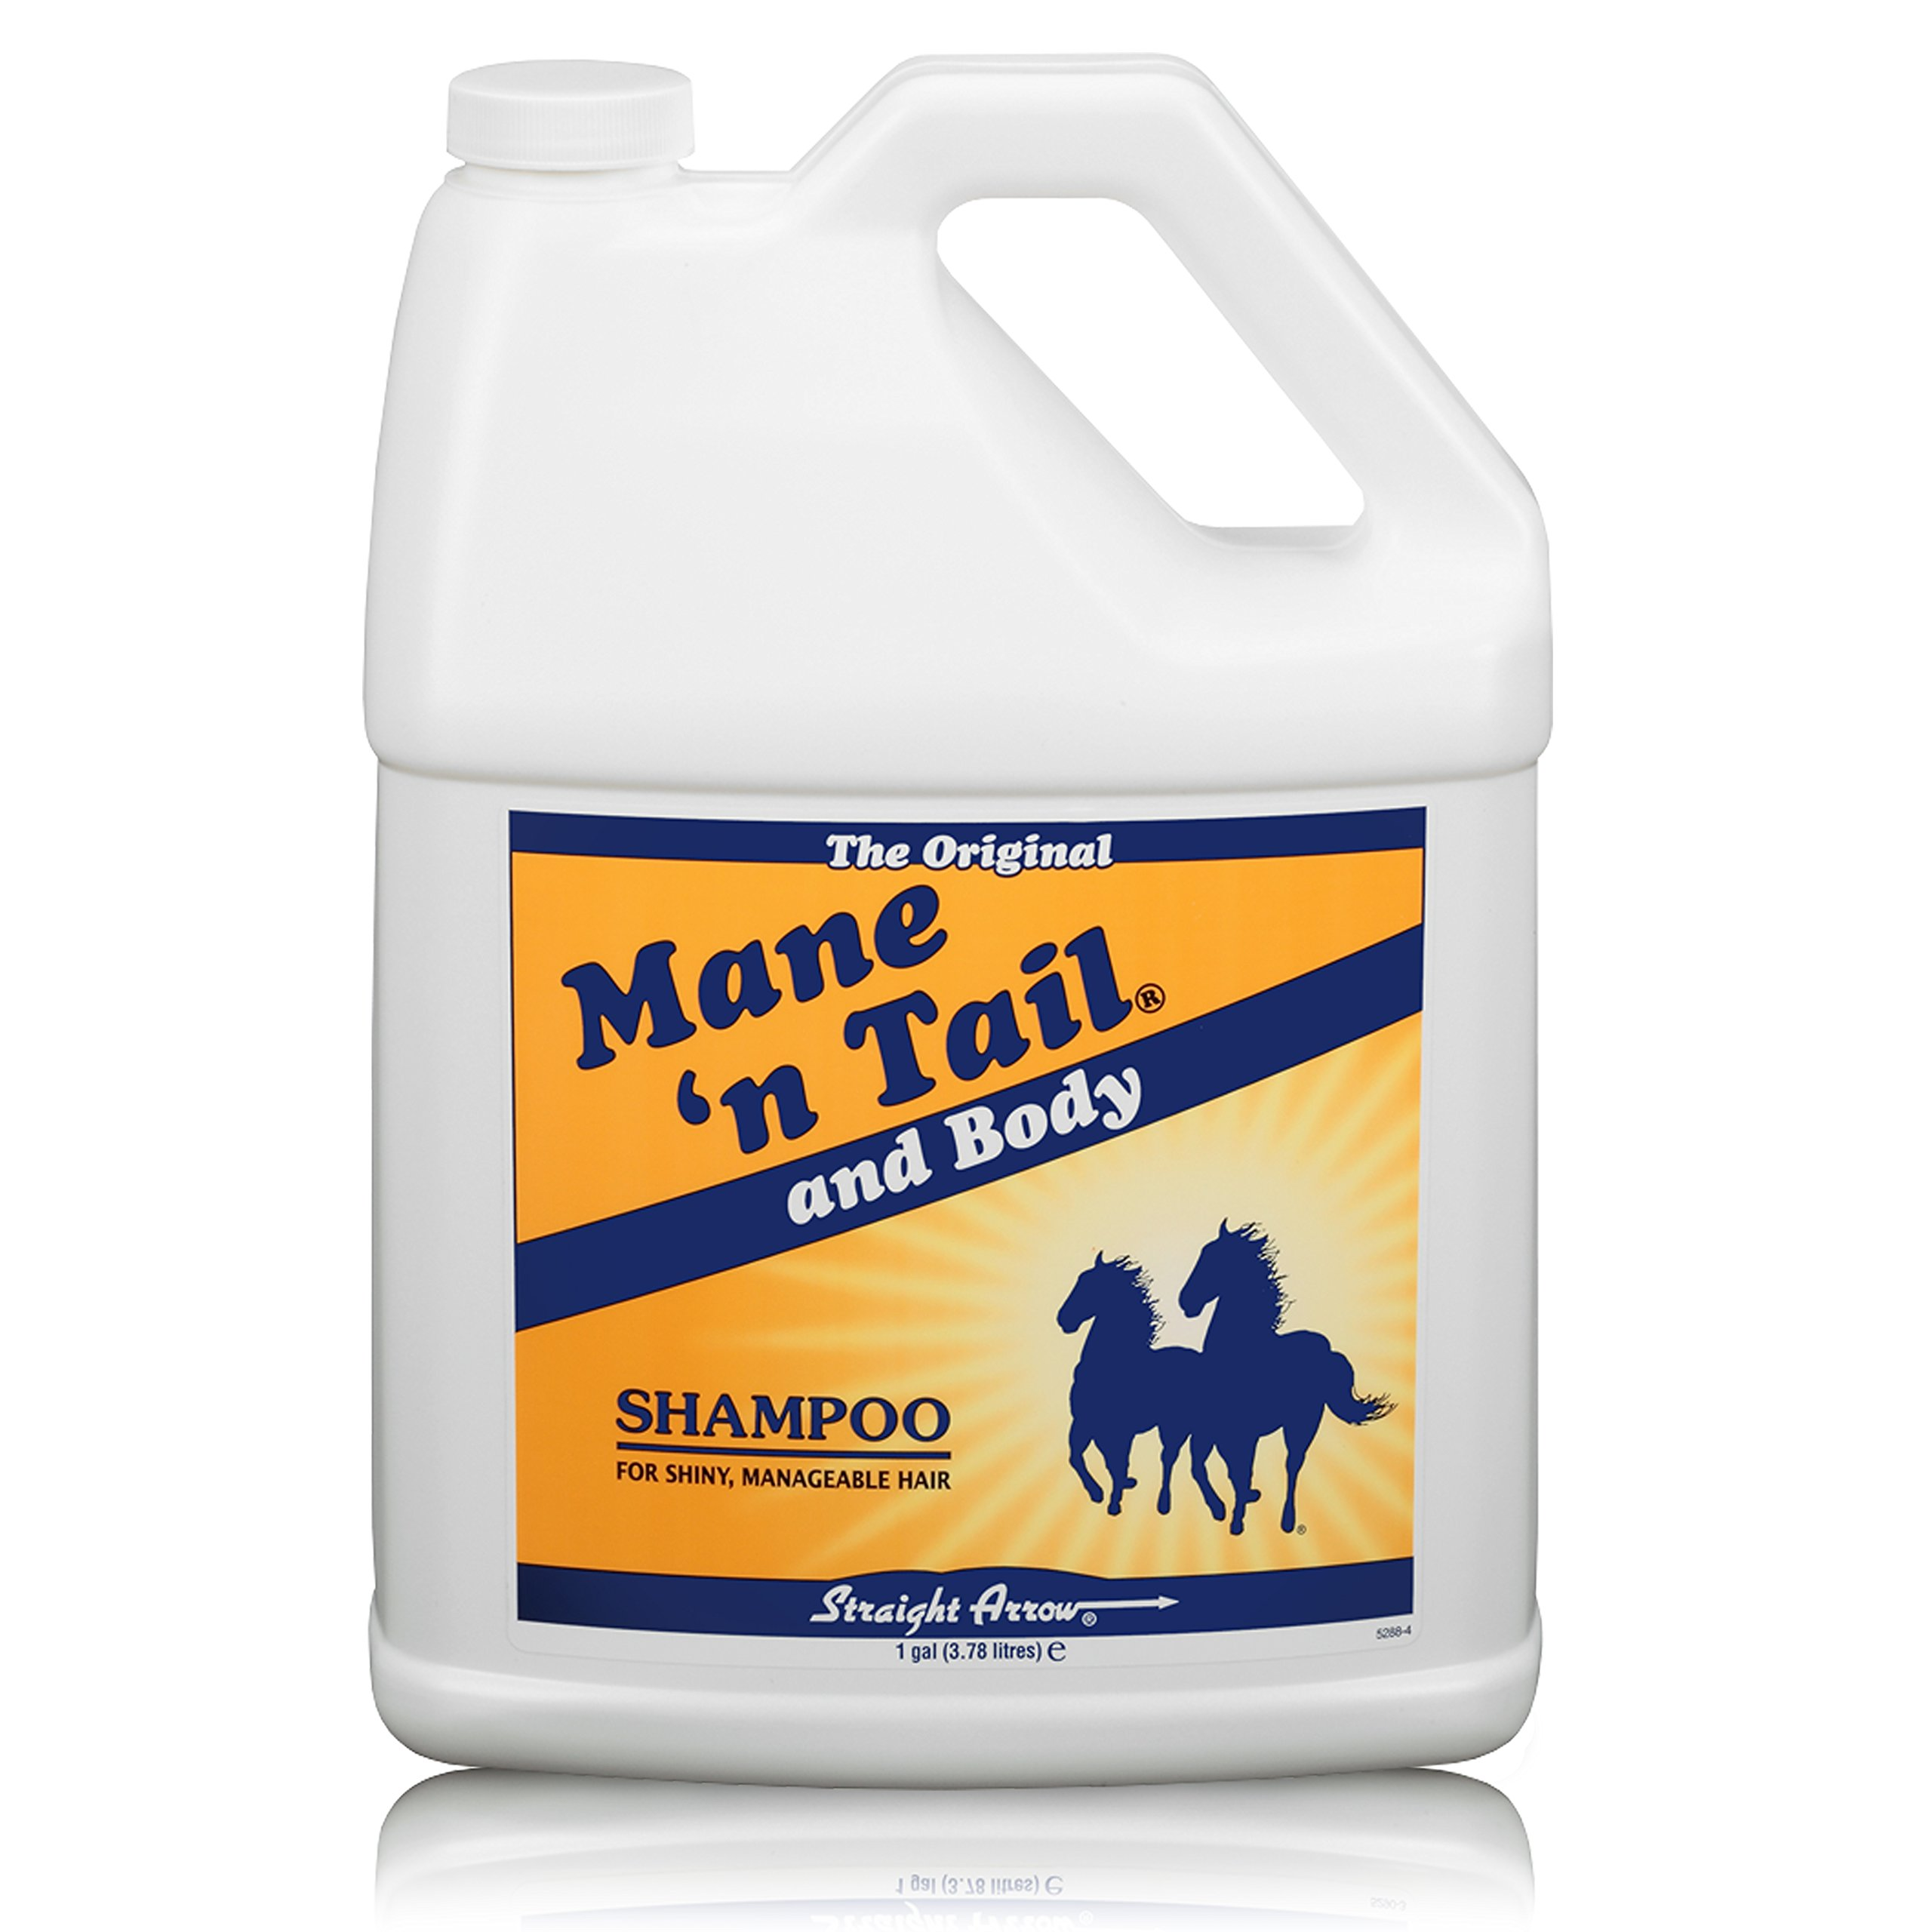 Mane 'n Tail and Body Shampoo For Pets And Humans 1 Gallon